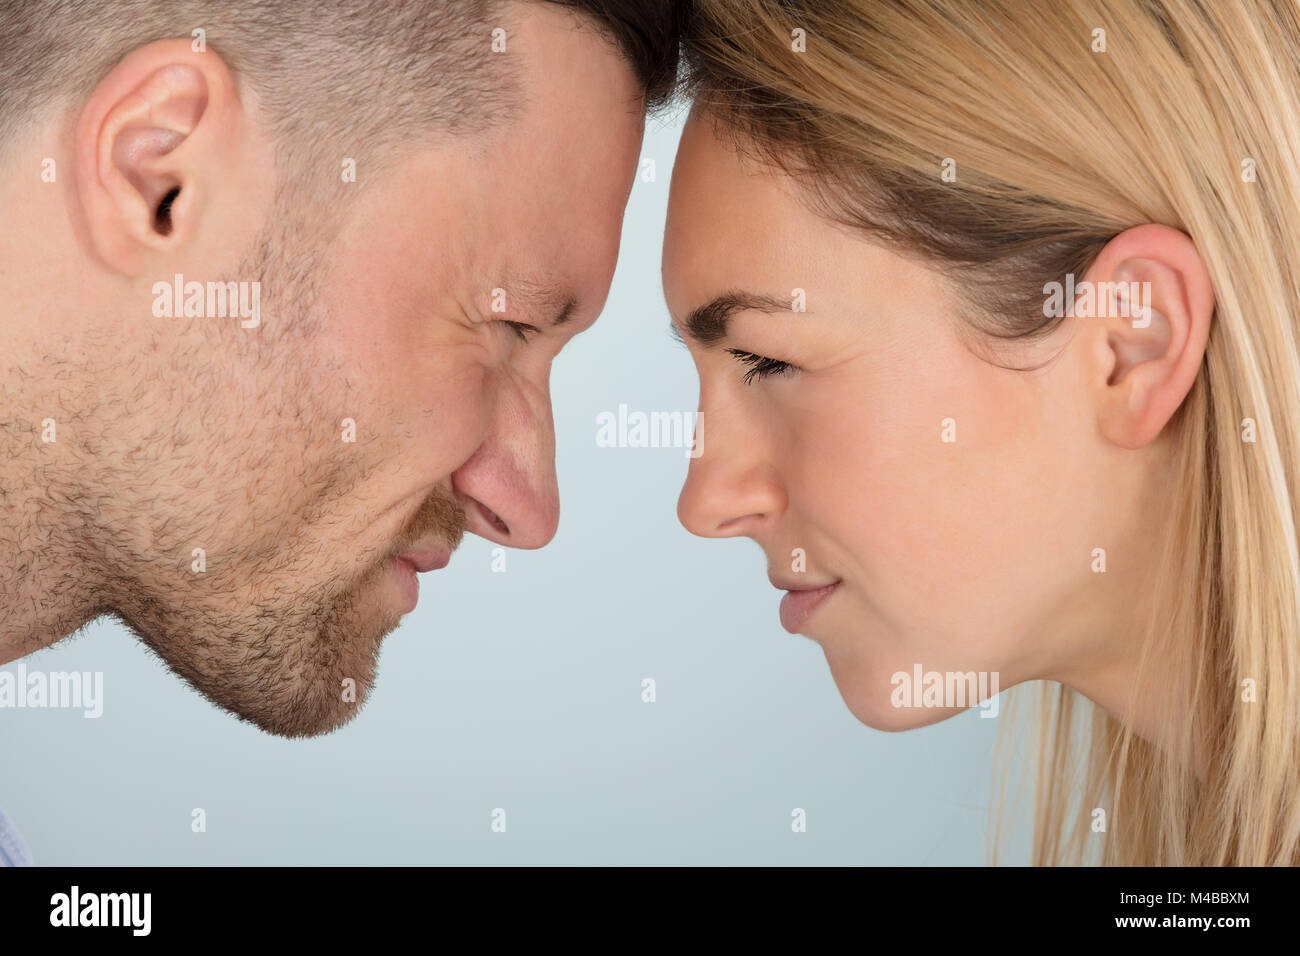 Close-up Of Young Couple Looking Angrily At Each Other - Stock Image